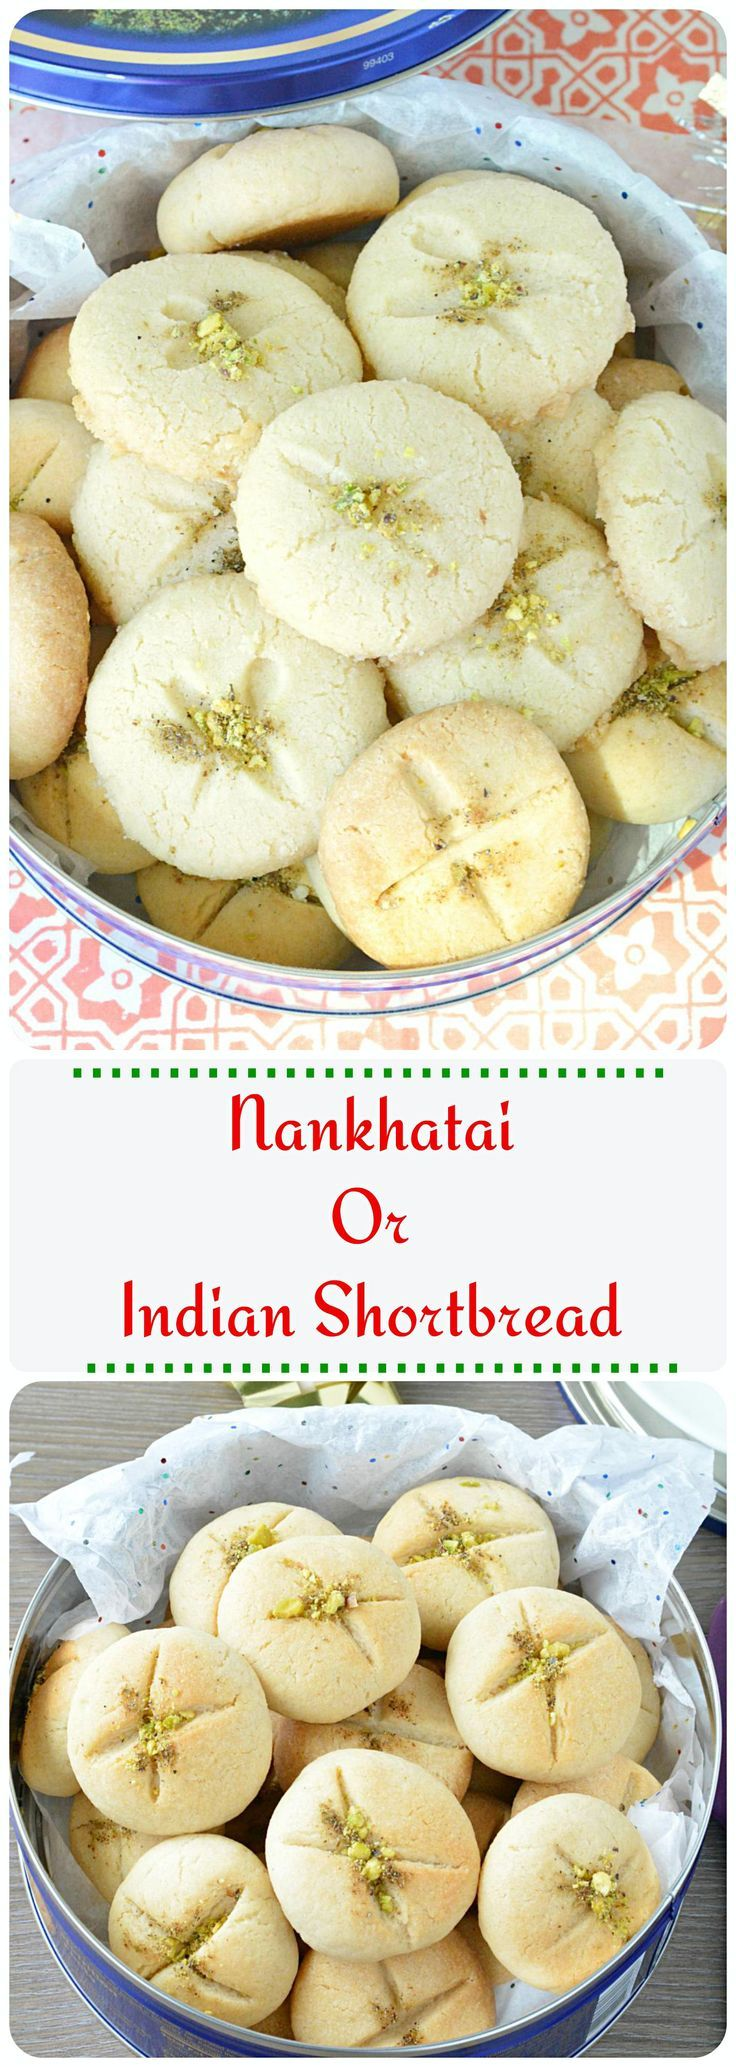 238 best indian food recipes images on pinterest cooking food nankhatai indian sortbread cookies light and flaky shortbread flavored with cardamom and vanilla indian dessert recipesindian forumfinder Gallery